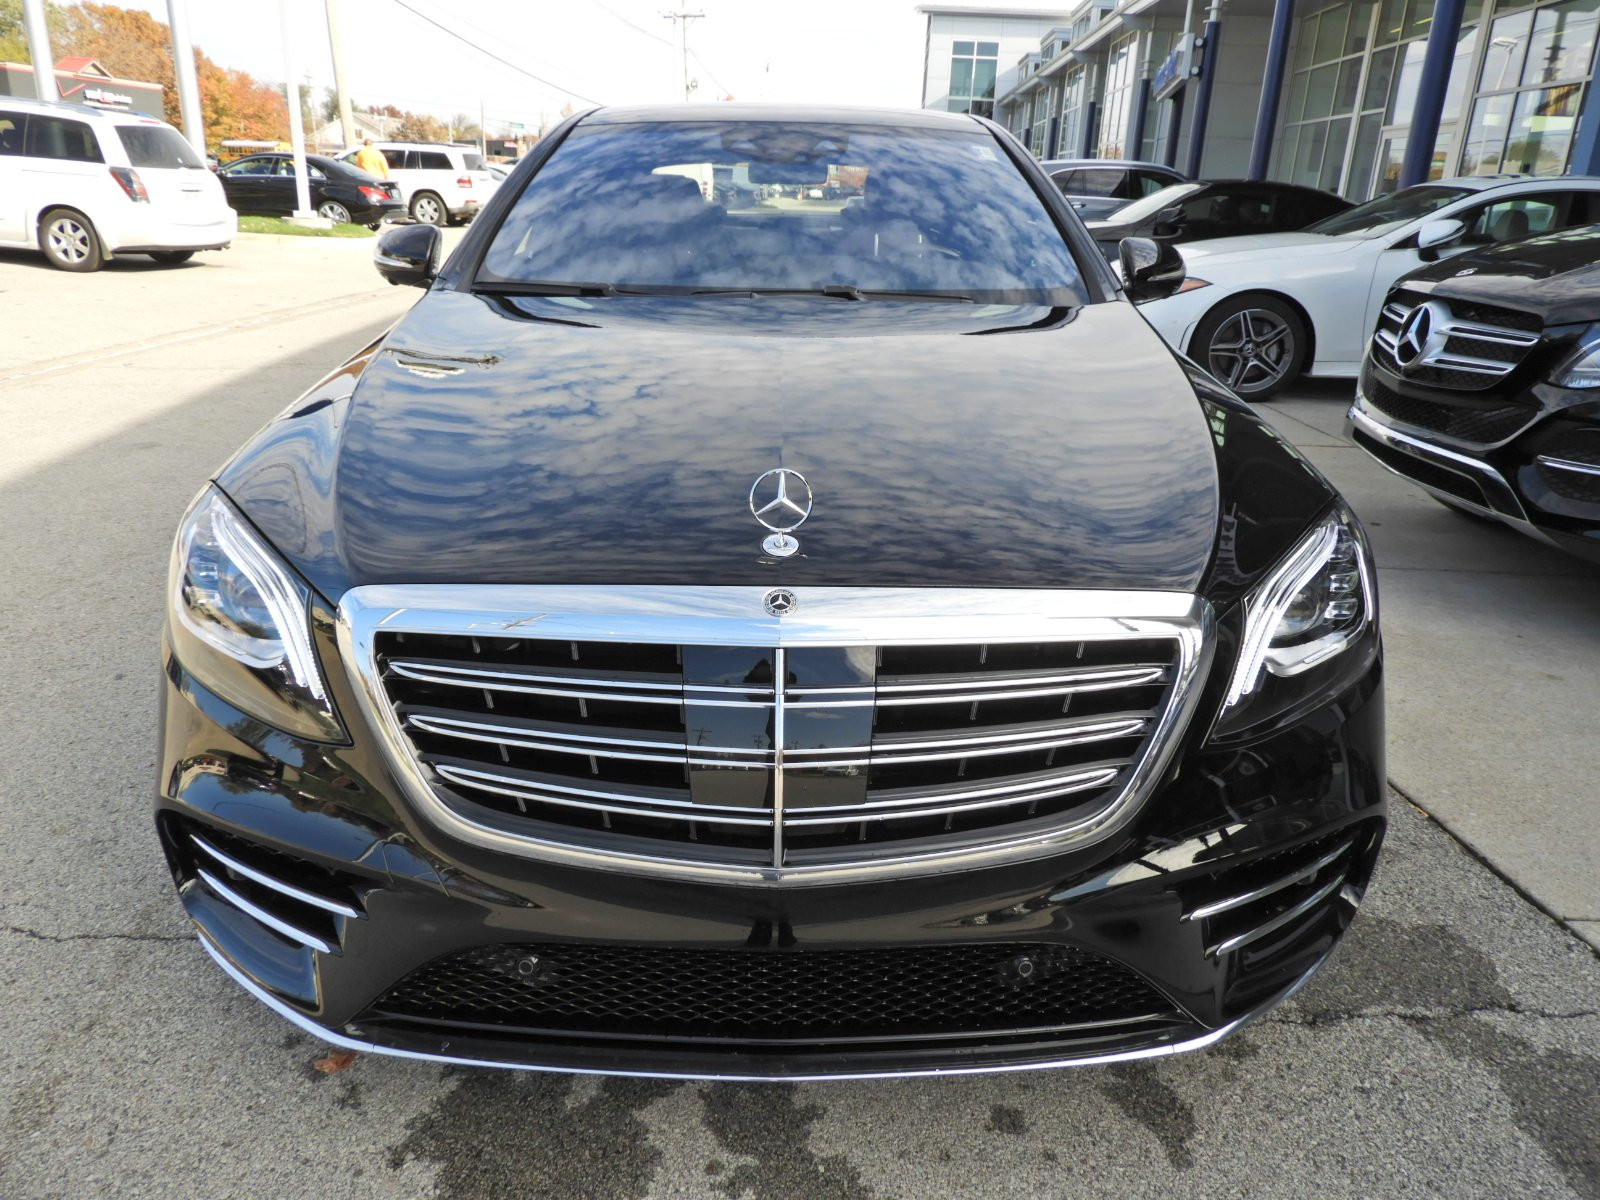 New 2019 Mercedes Benz S Class S 560 4MATIC Sedan 4dr Car in